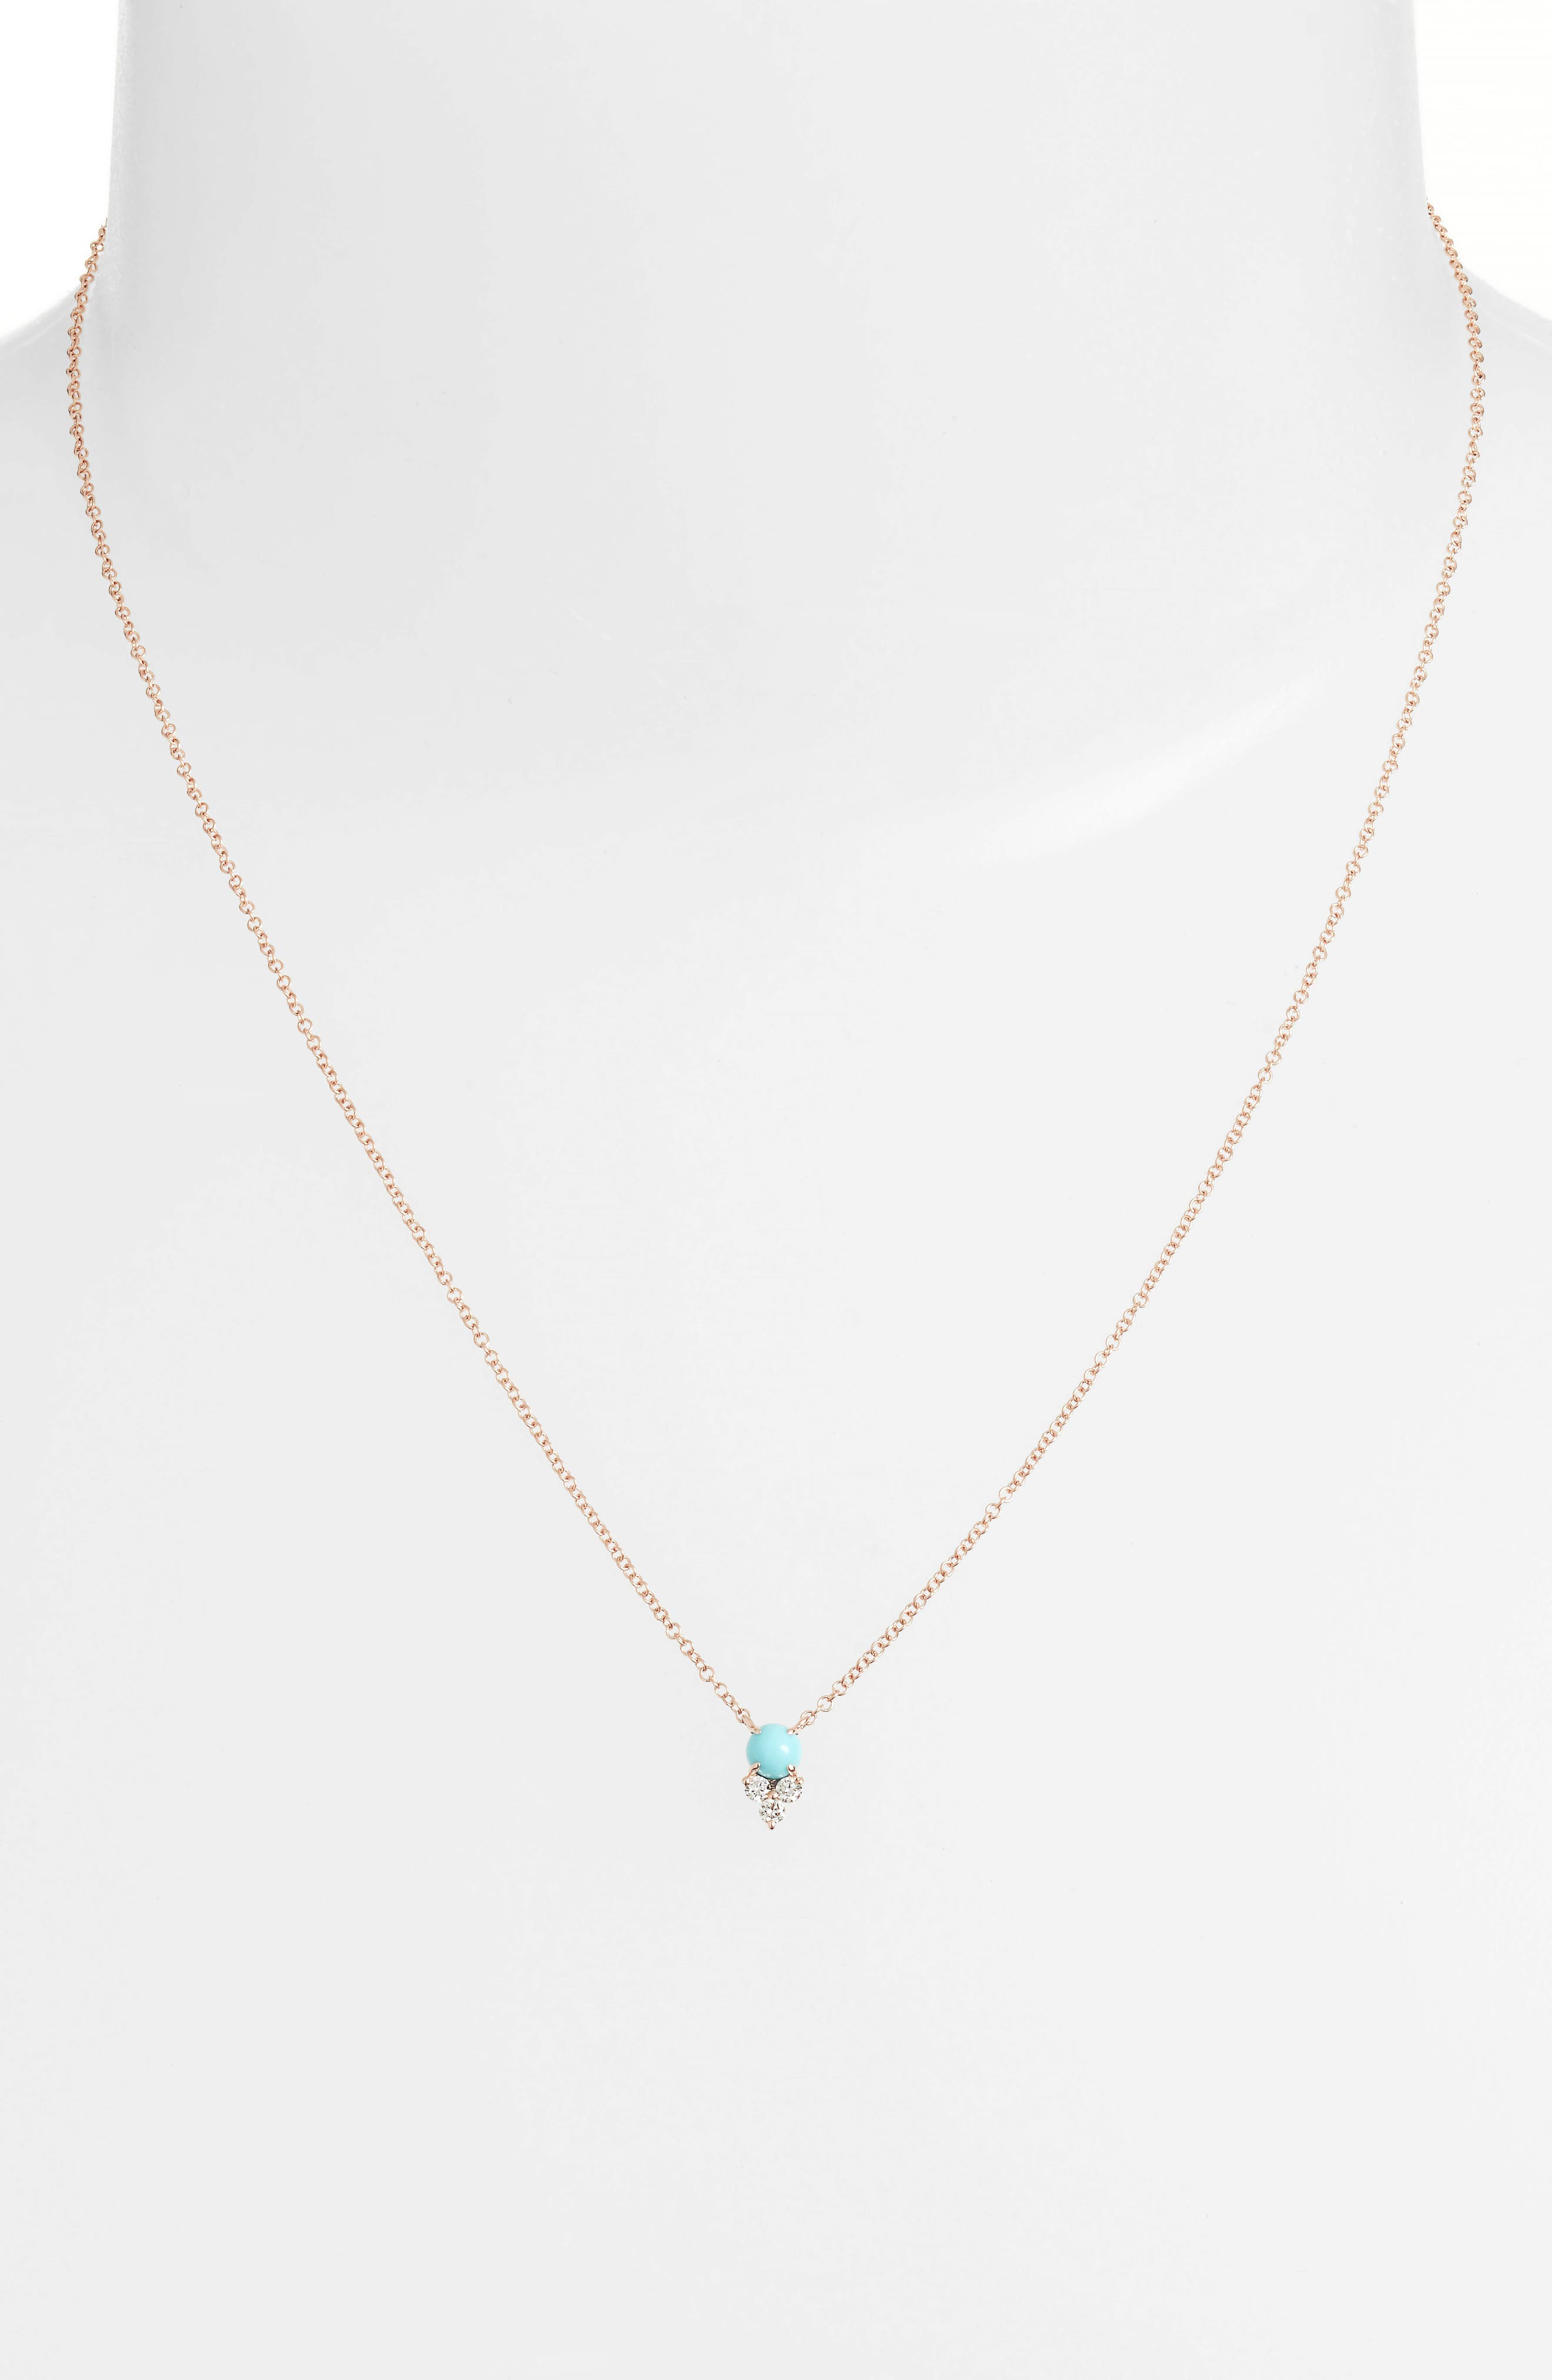 EF COLLECTION, Diamond Trio Stone Pendant Necklace, Alternate thumbnail 2, color, ROSE GOLD/ TURQUOISE